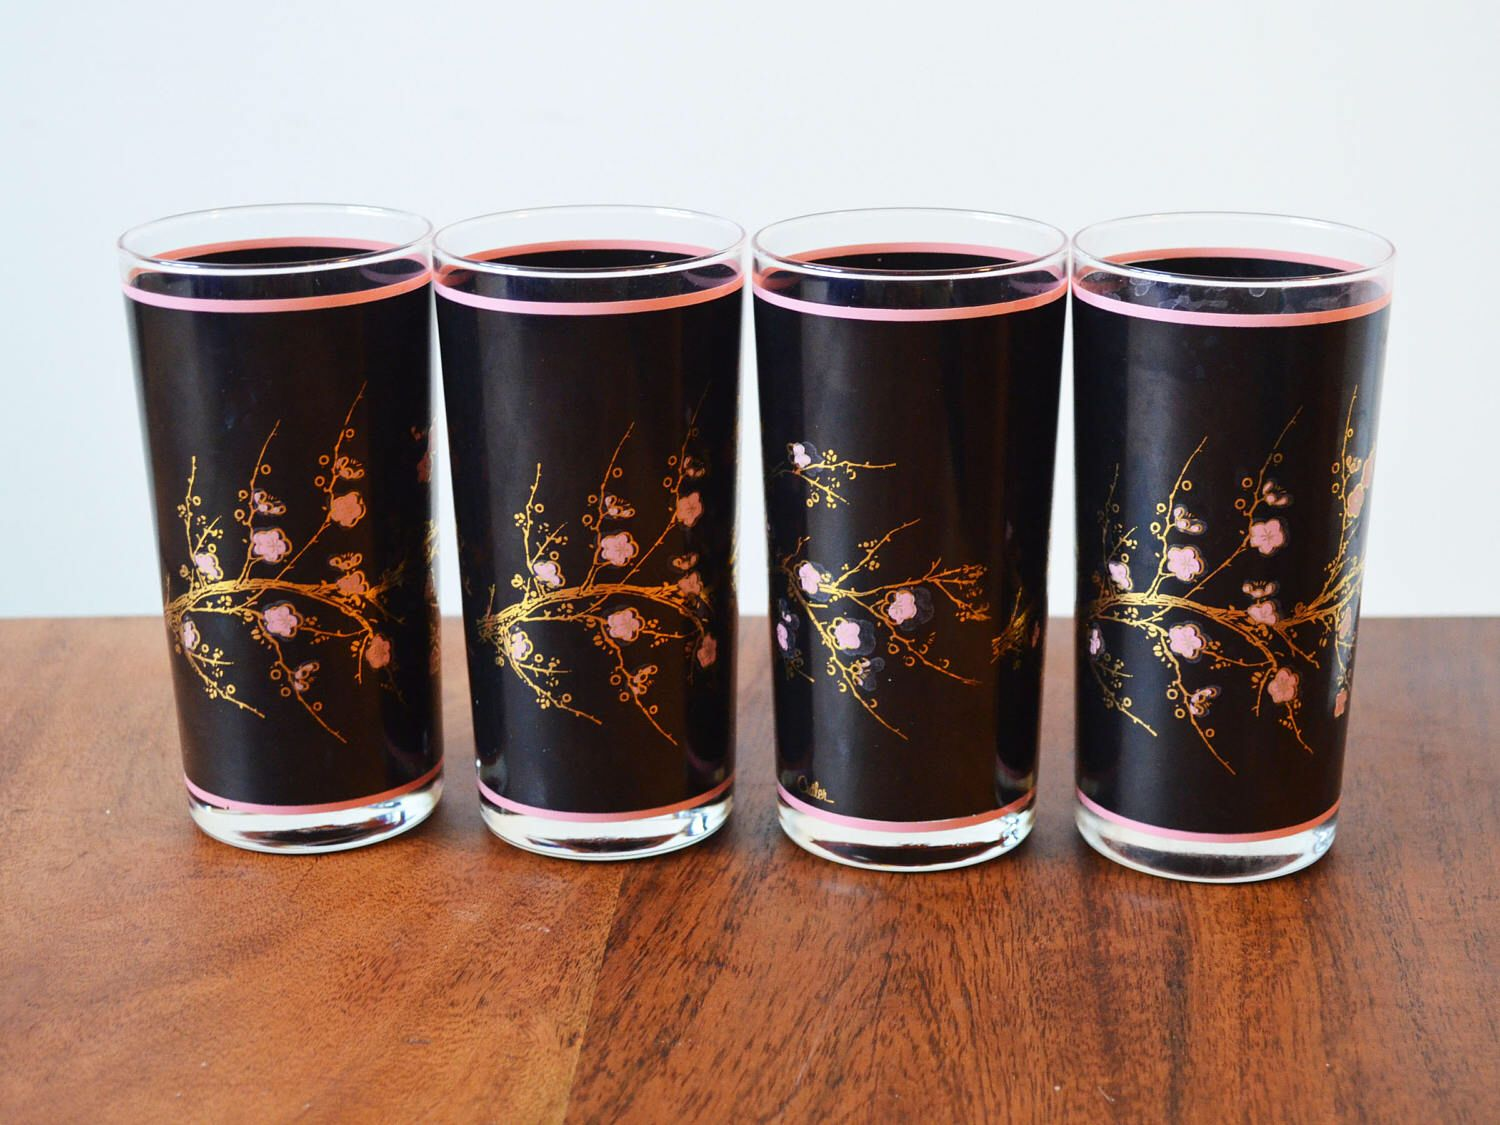 Charming Rare Vintage Cutler Barware 24k Gold And Black Cherry Blossoms Set Of 4  Highballs Circa 1970s Made In Canada, Mid Century Barware